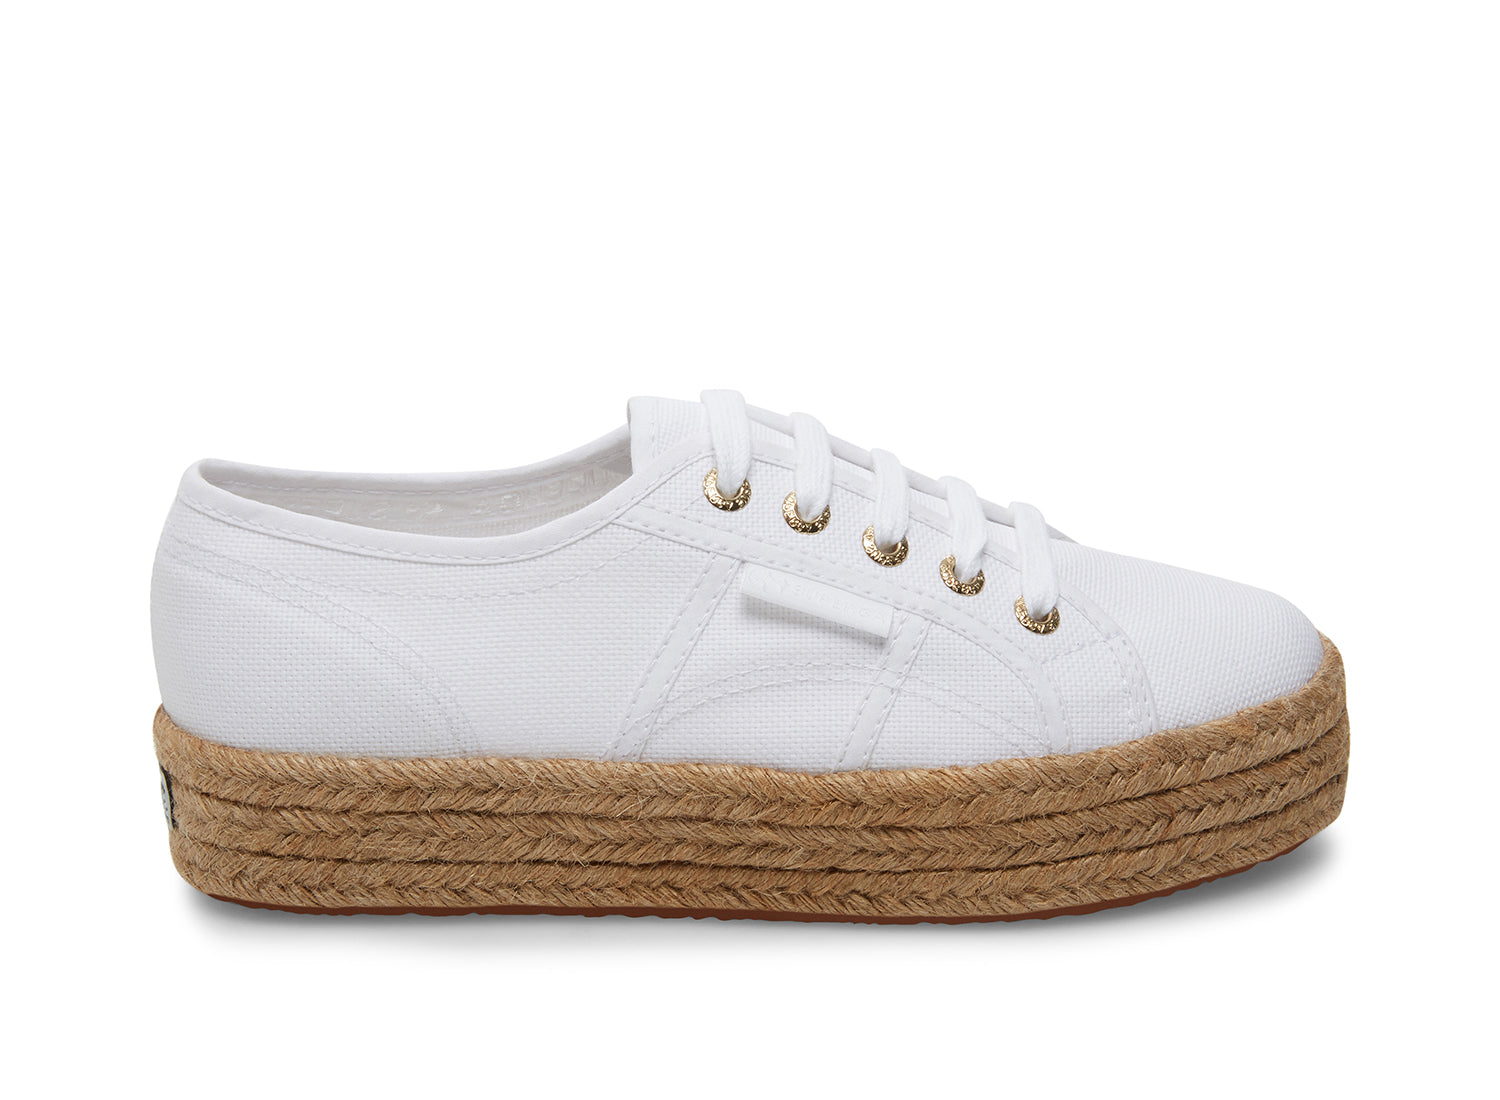 check out for whole family details for 2730 COTROPEW WHITE-GOLD – Superga